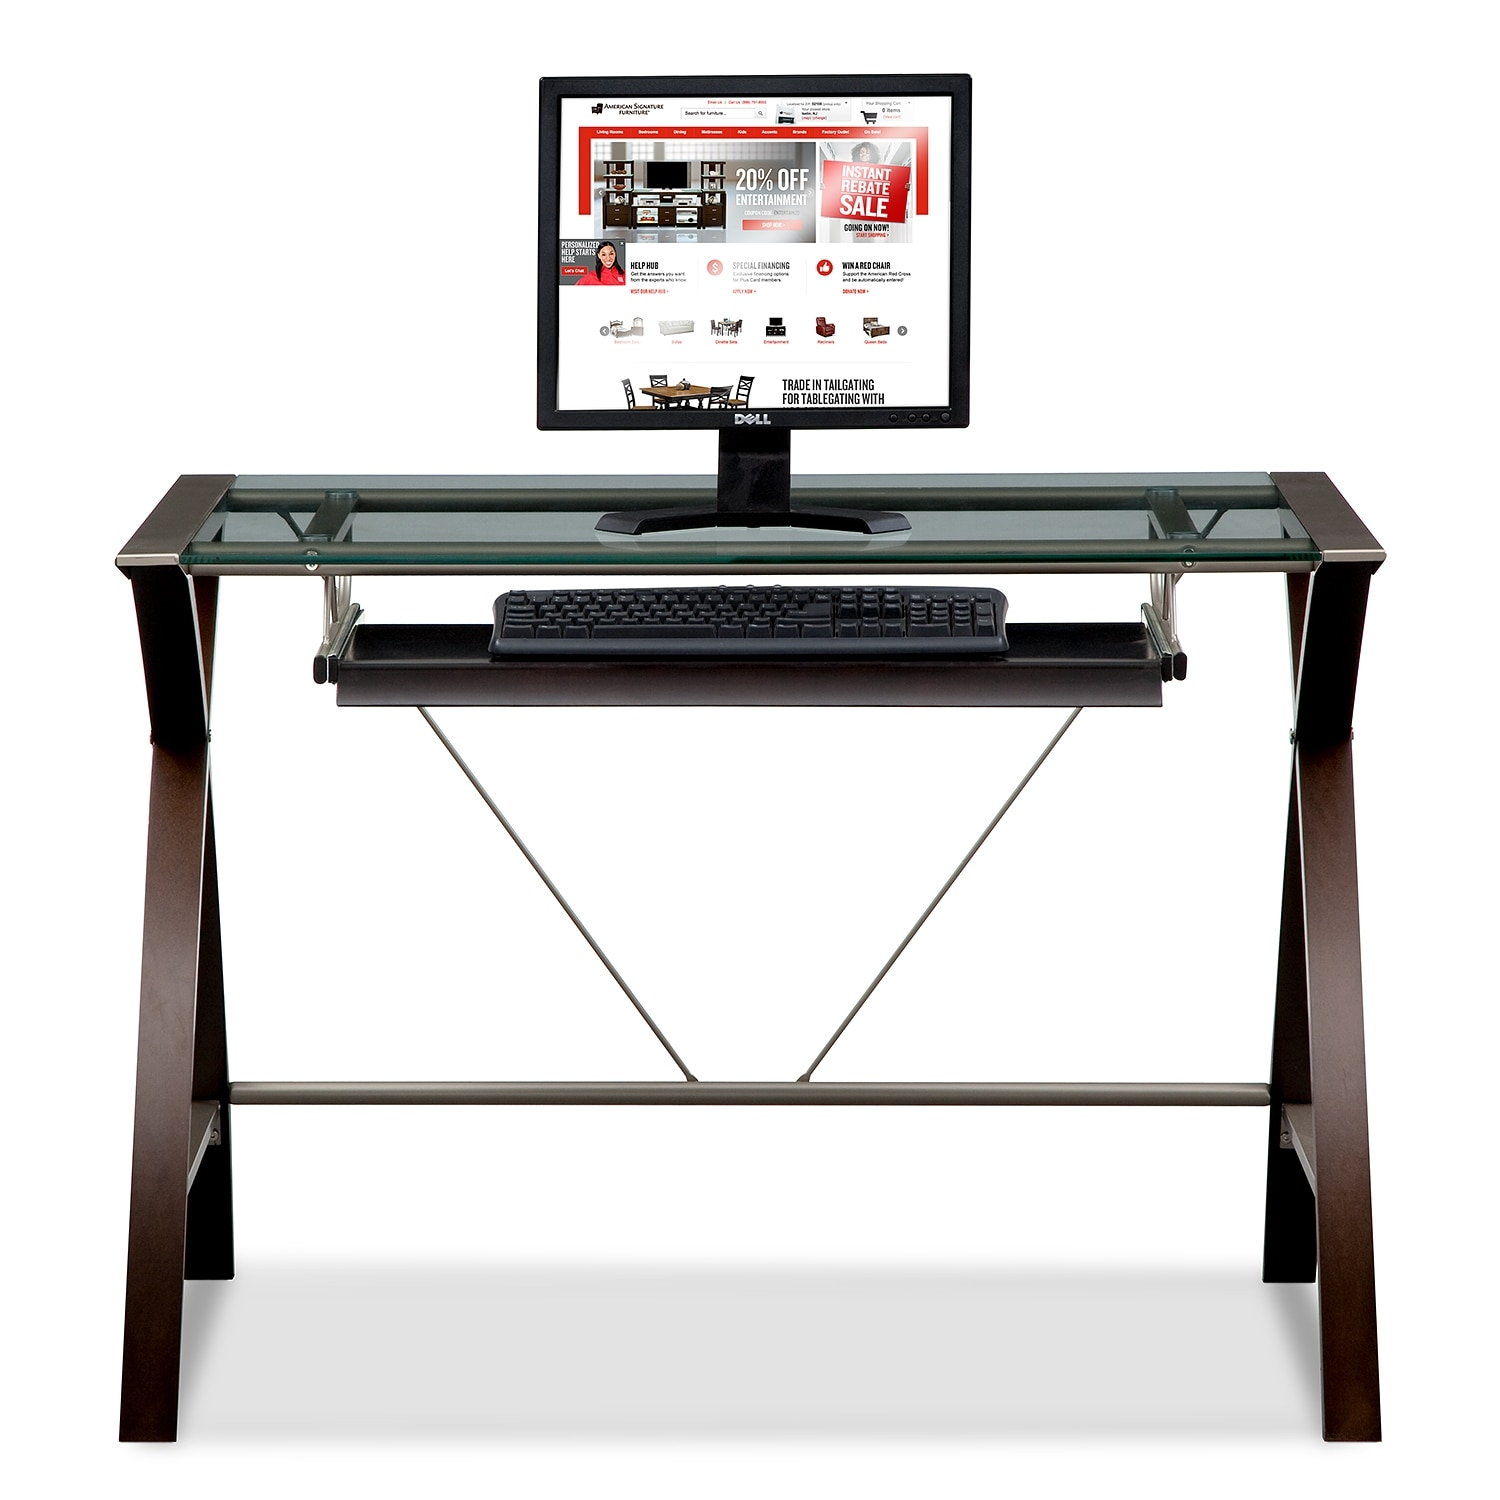 Orion Computer Desk with Keyboard Tray | Value City Furniture